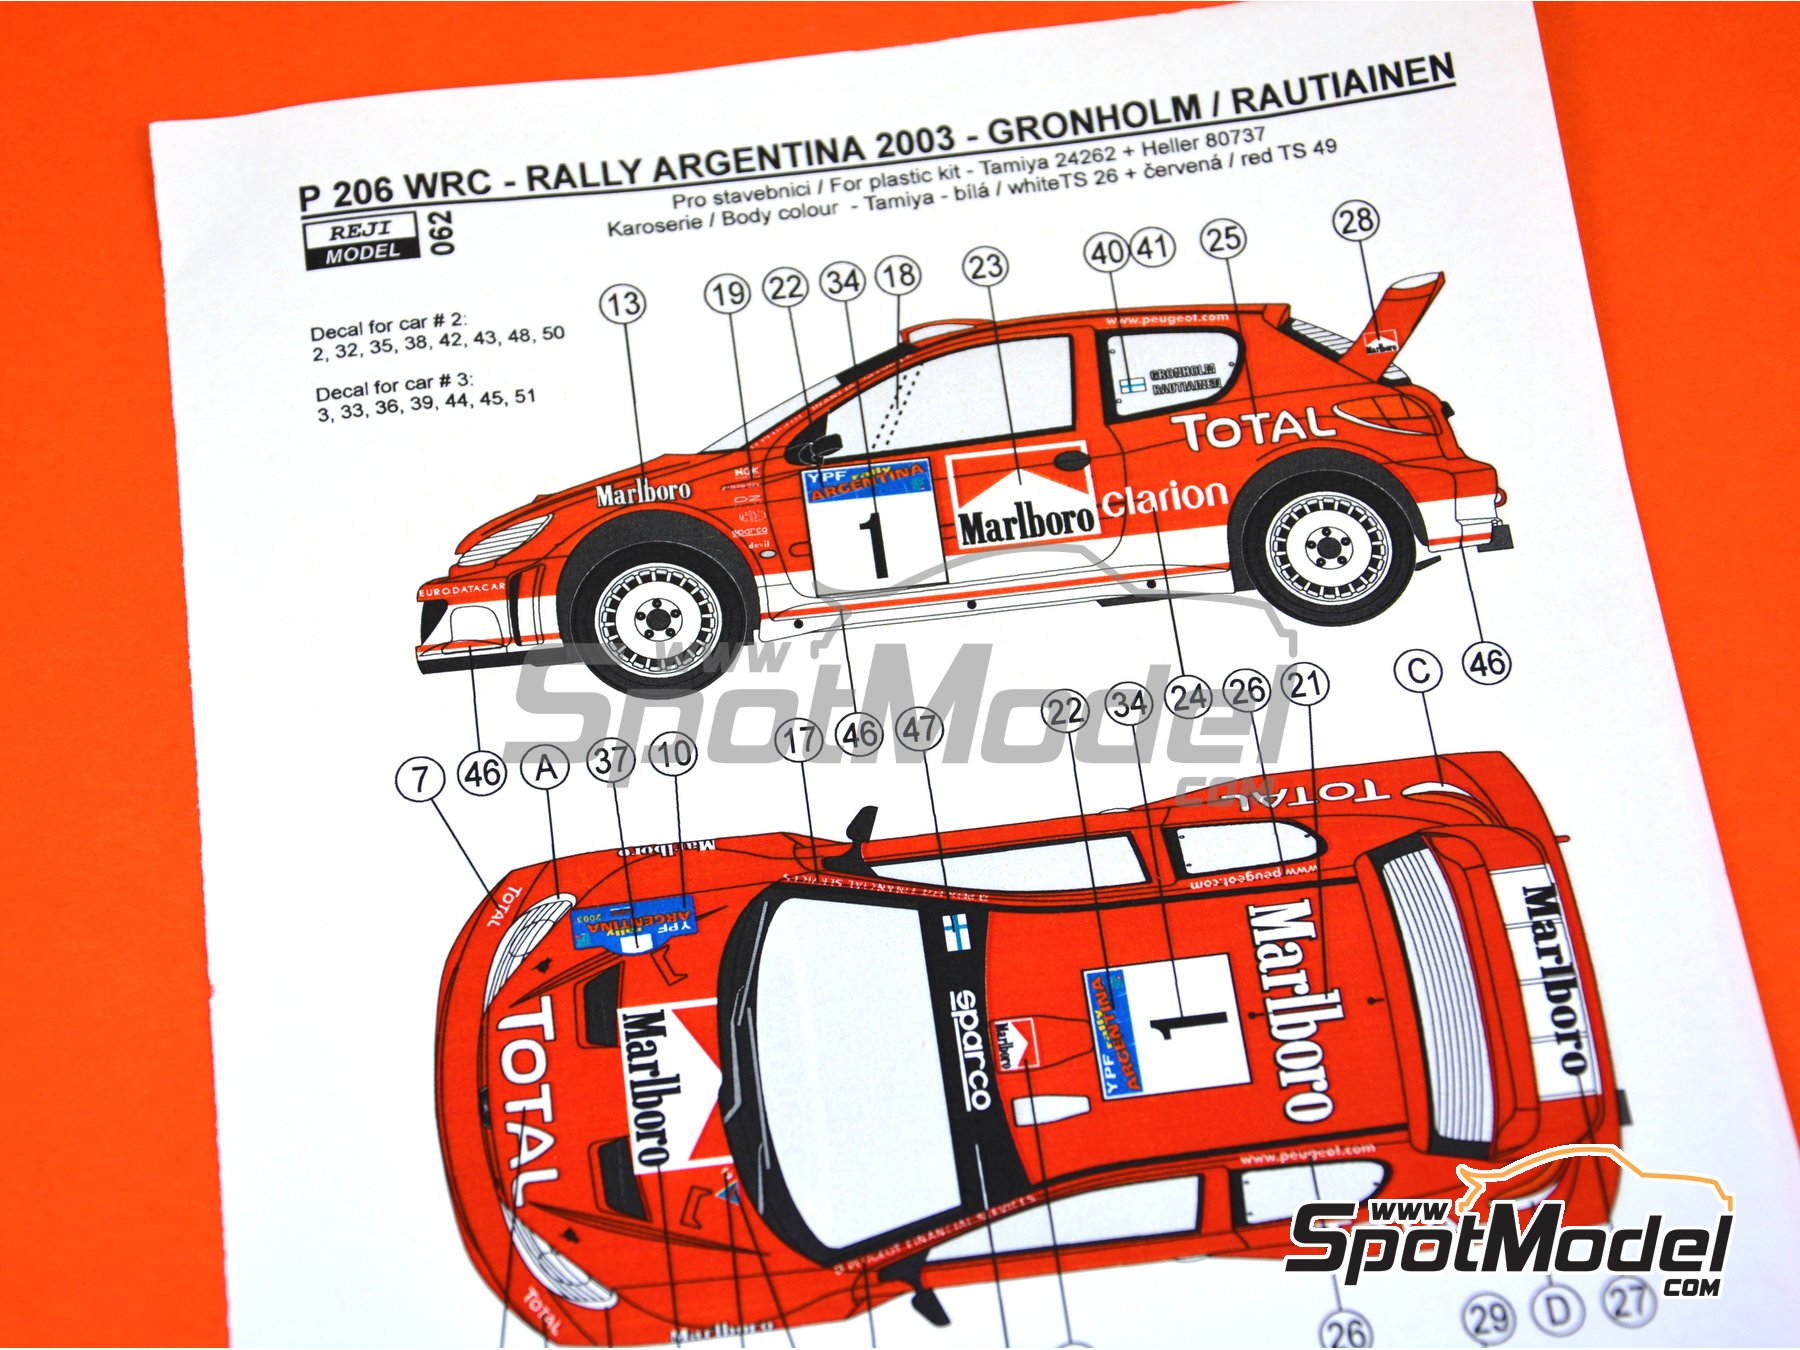 Image 1: Peugeot 206 WRC - Argentina rally 2003 | Marking in 1/24 scale manufactured by Reji Model (ref. REJI-062)